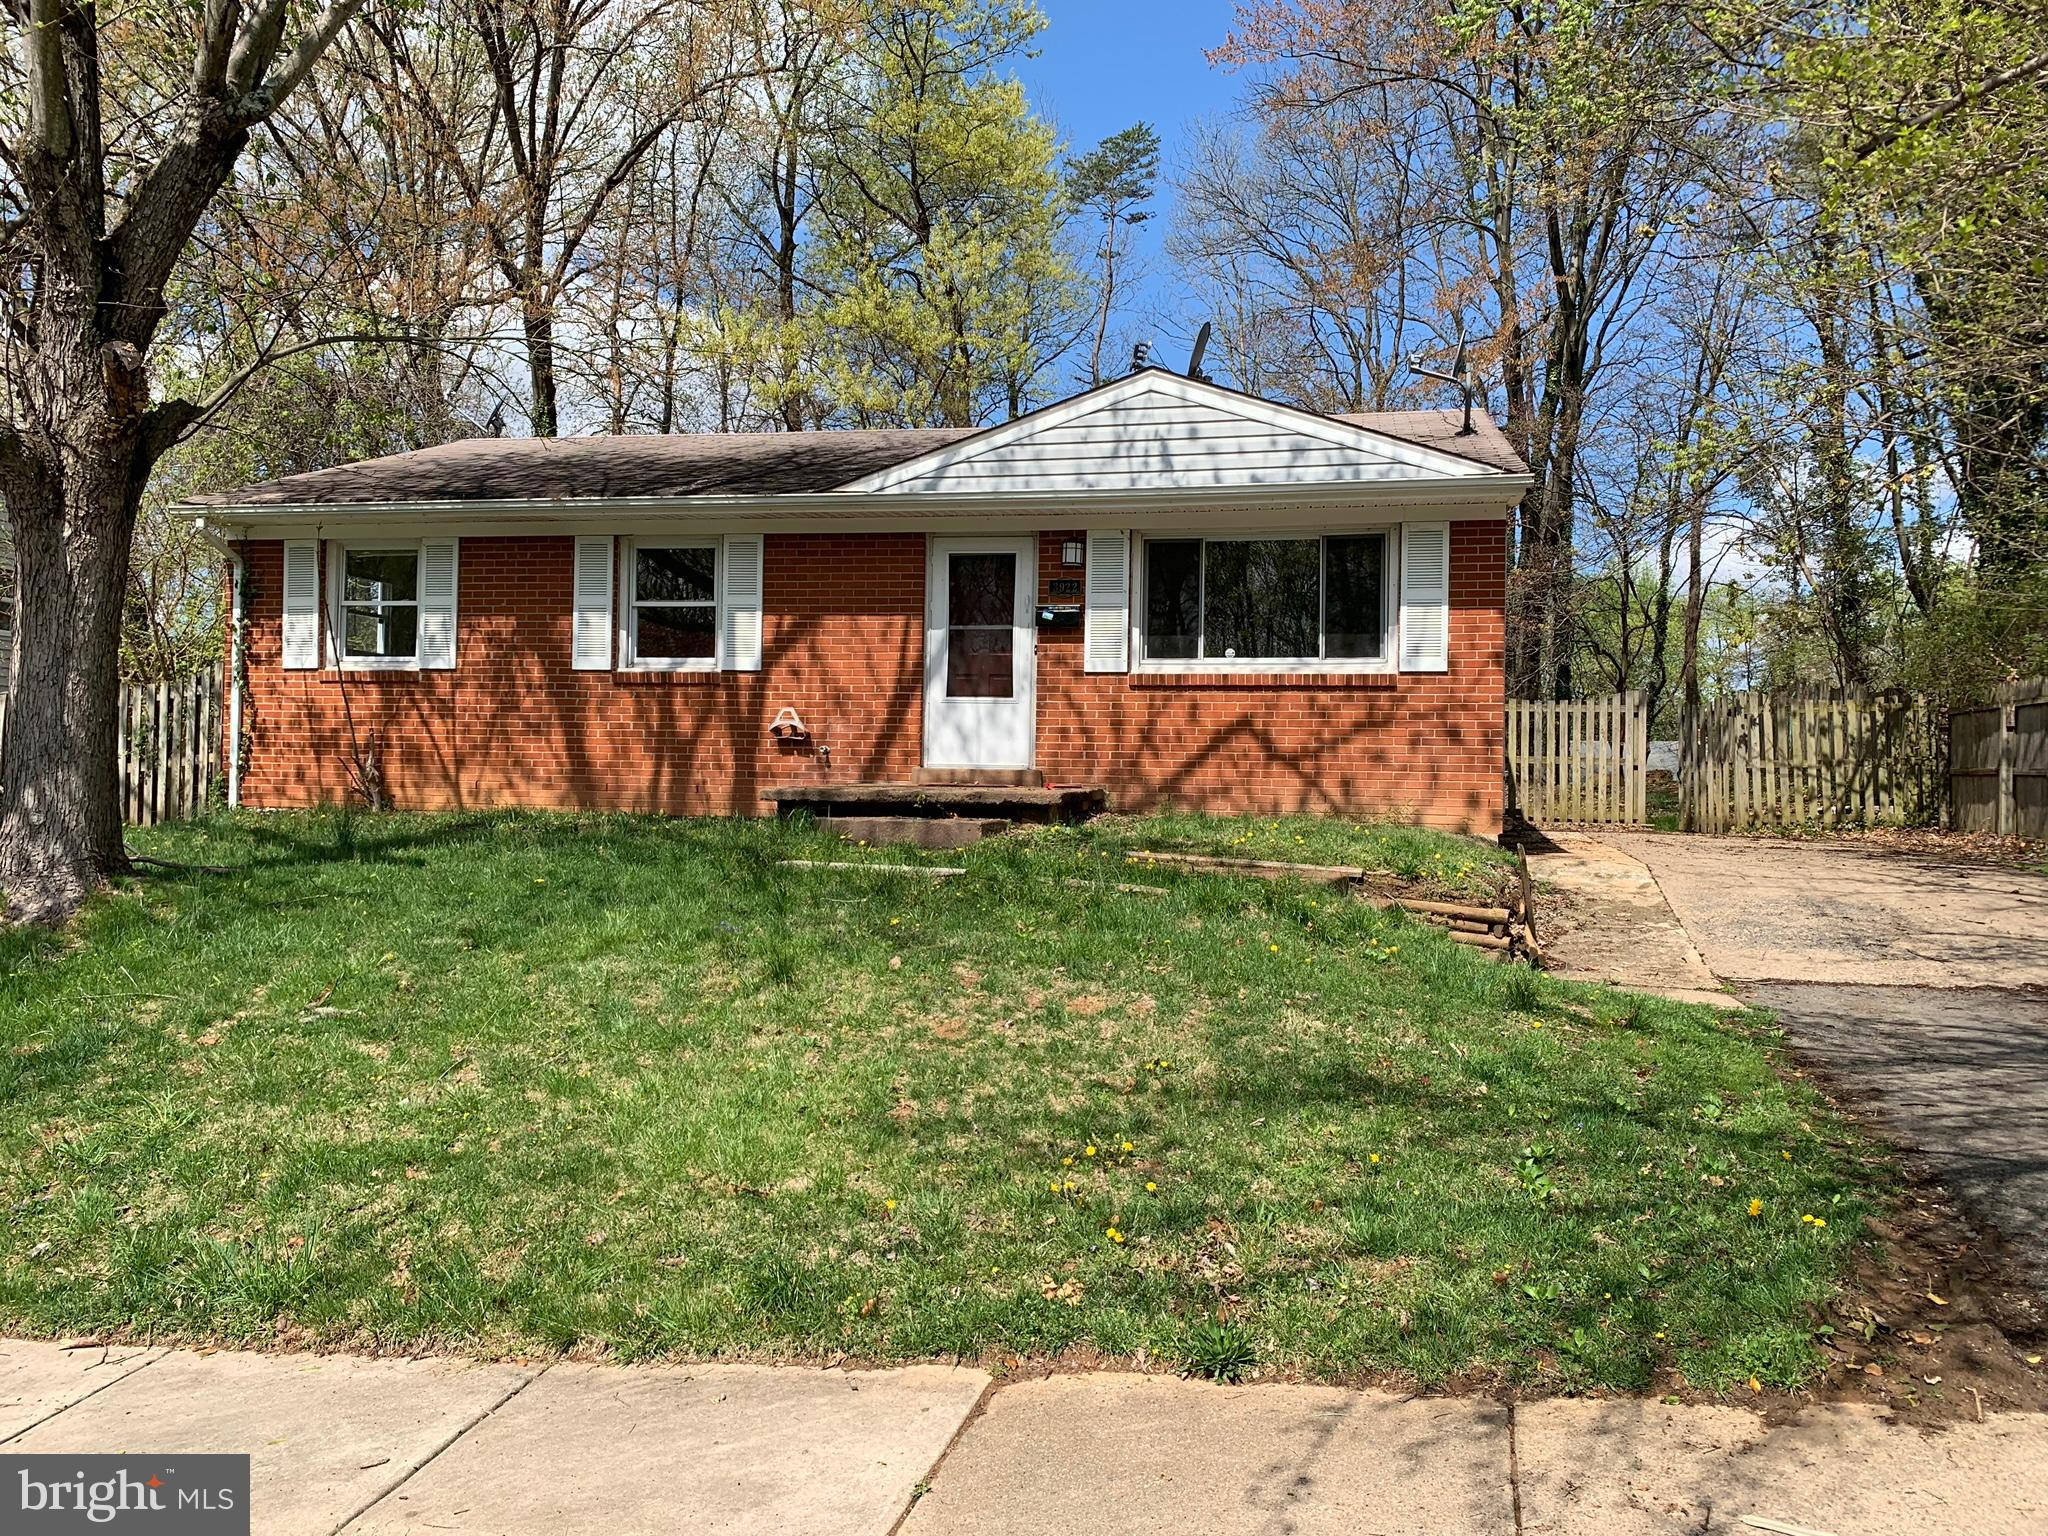 Great opportunity!! 3 BR 2 FB house with a recently renovated kitchen and a spacious backyard. Close to I-95, shopping centers, transportation and commuter lots. Sold As-Is. Property needs some repairs to bring it to its full potential! Send your highest and best offers